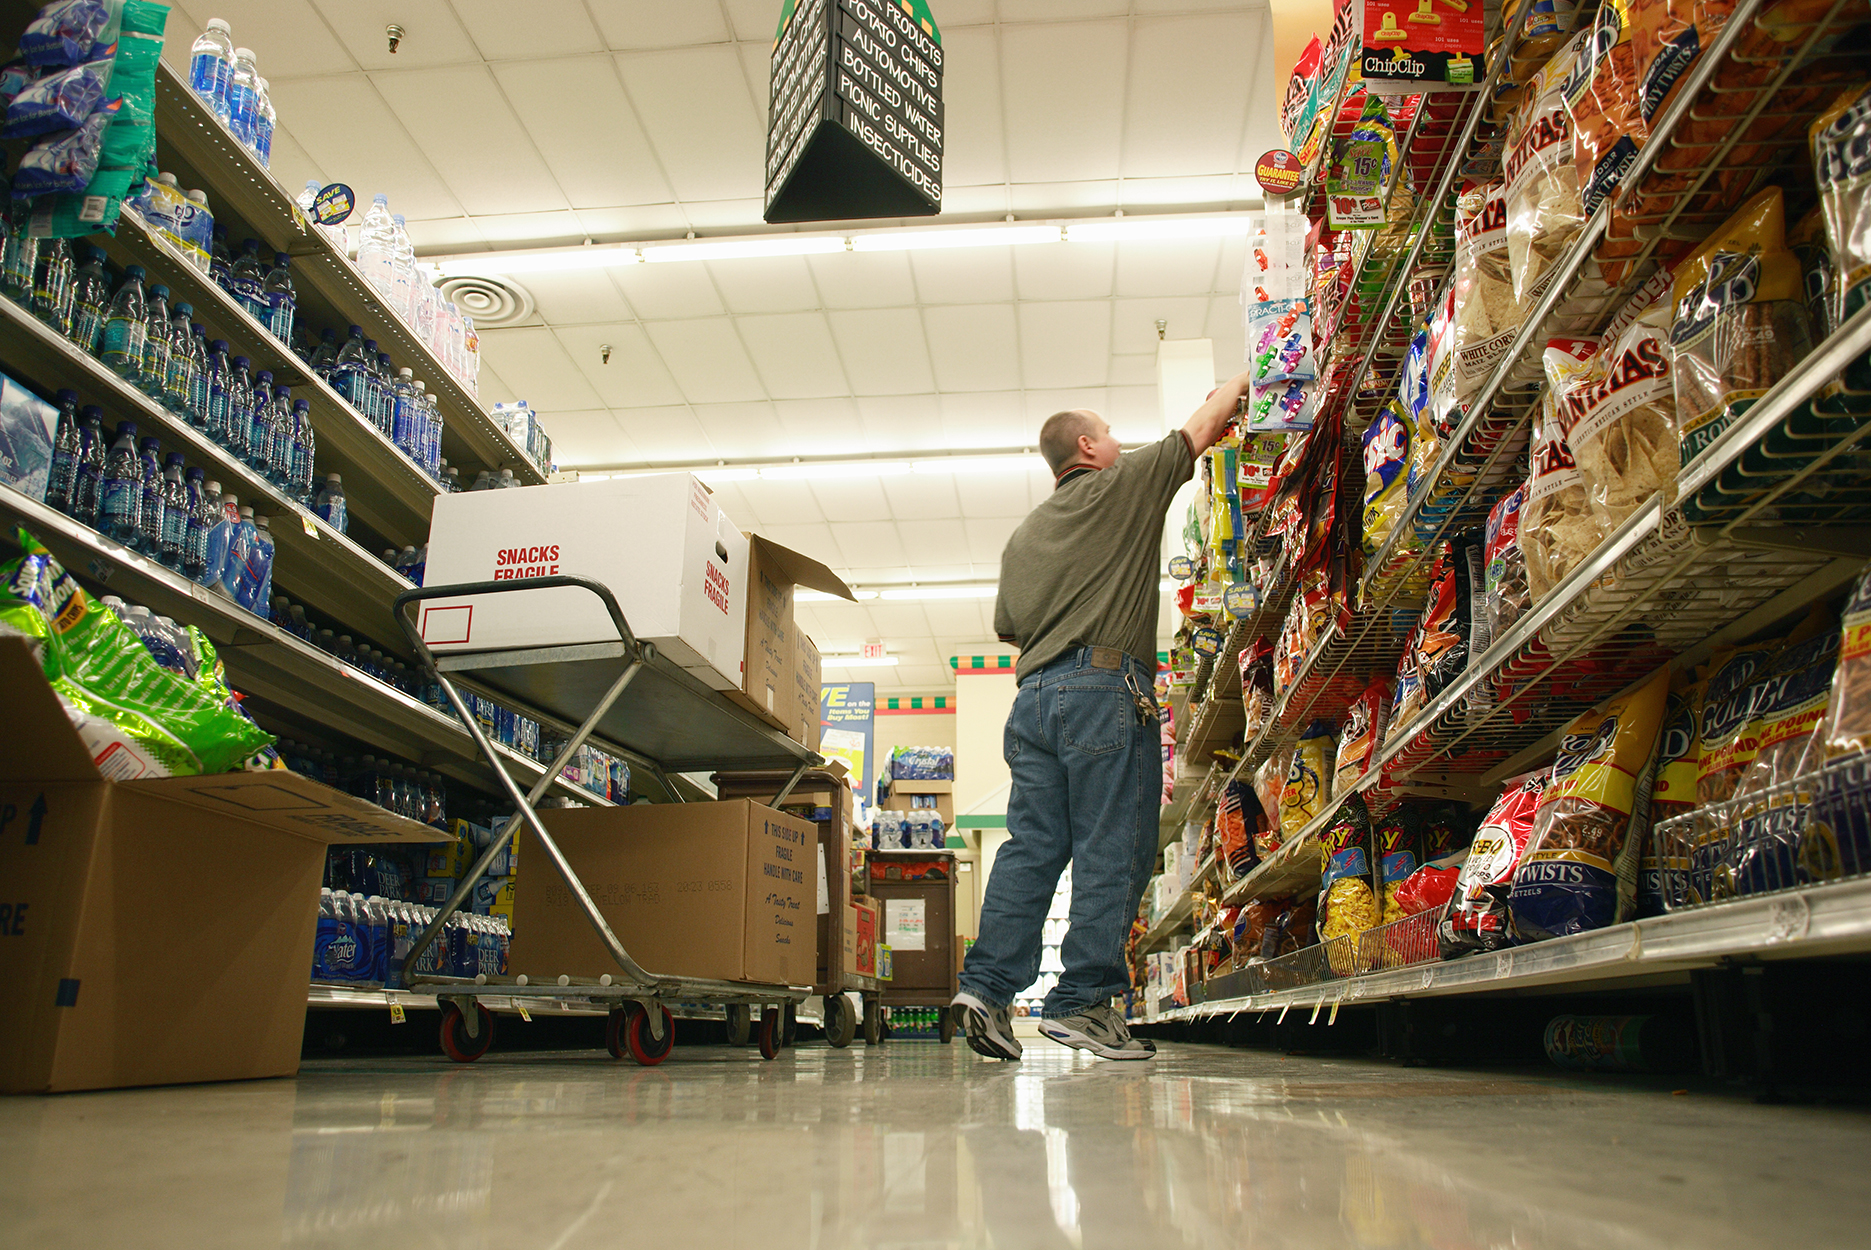 Man stocking products at grocery store, low angle view